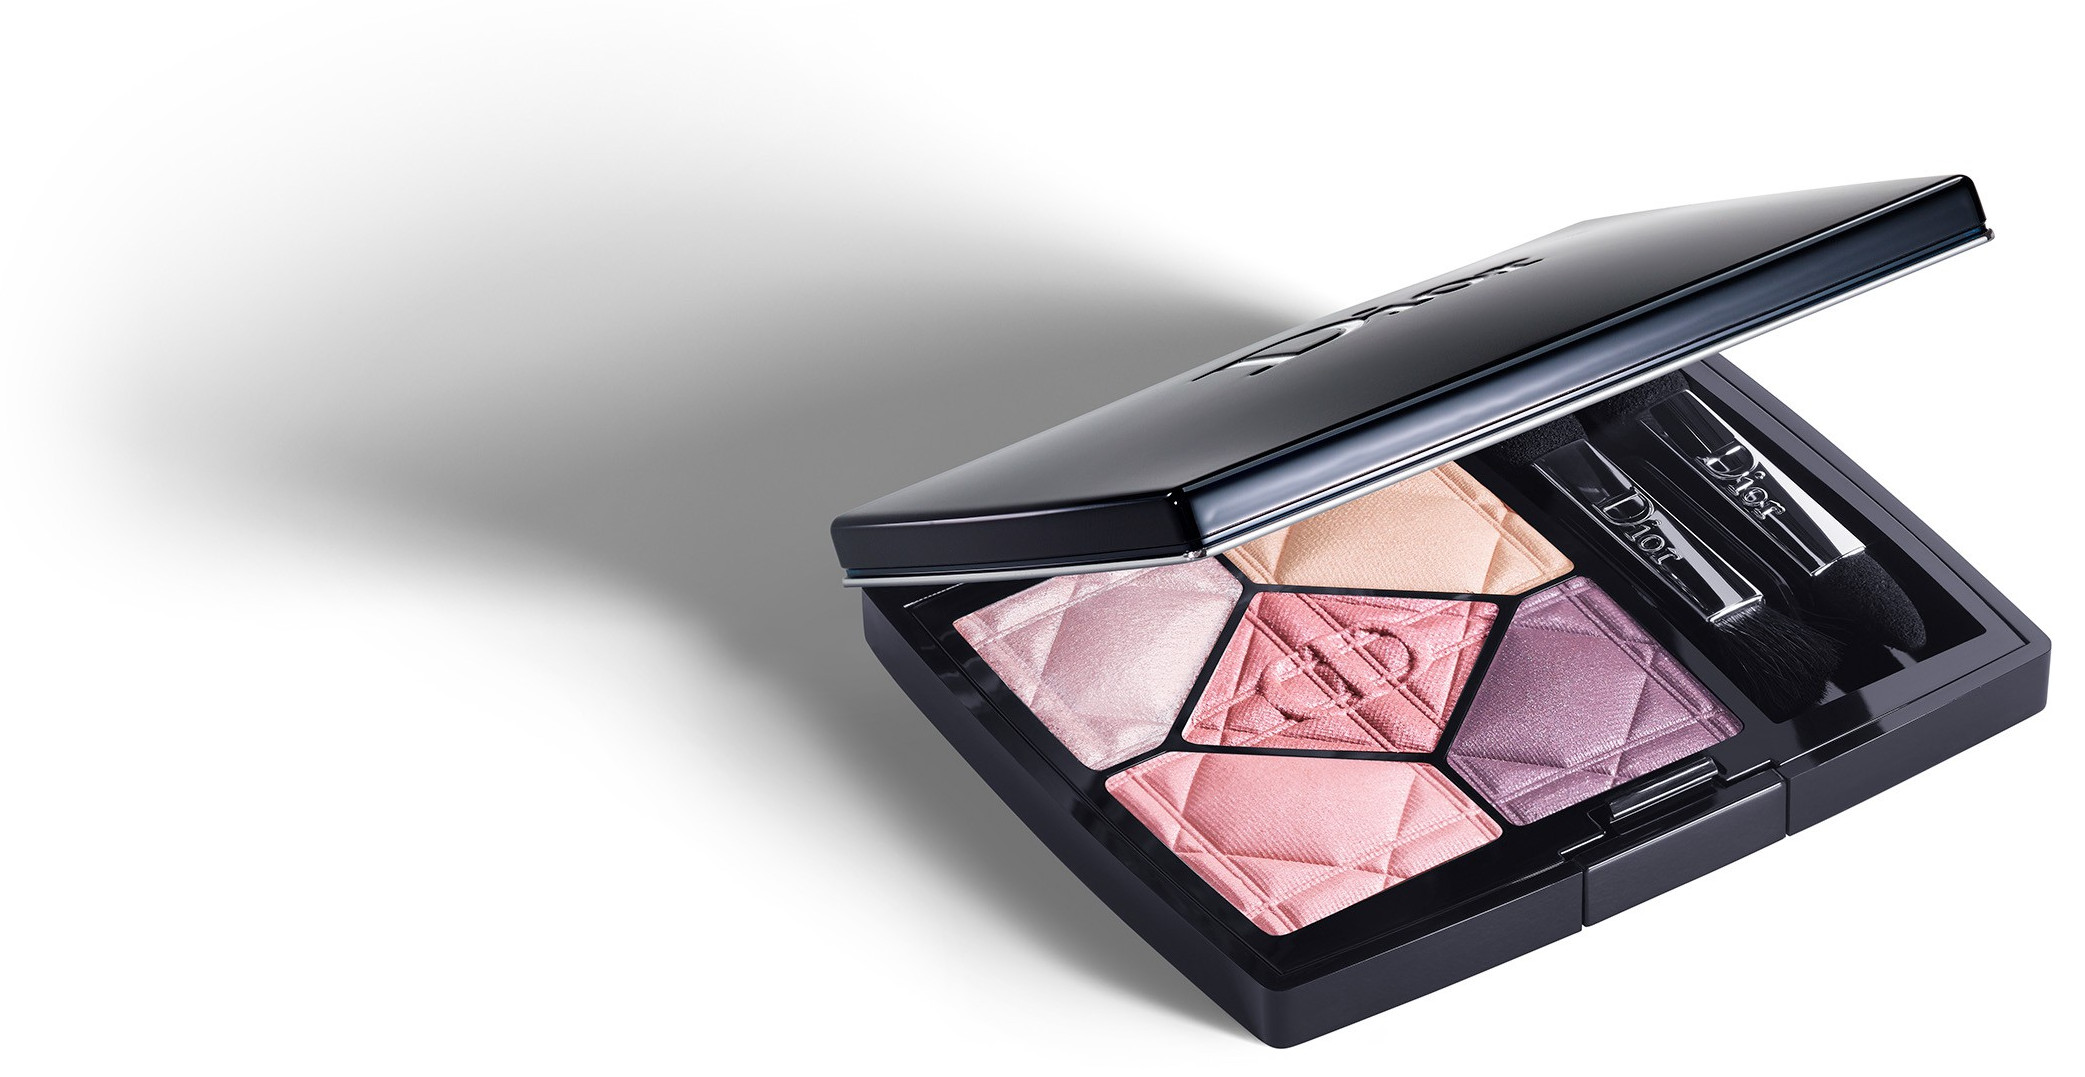 Dior Diorsnow Spring 2018 Collection 5 Couleurs